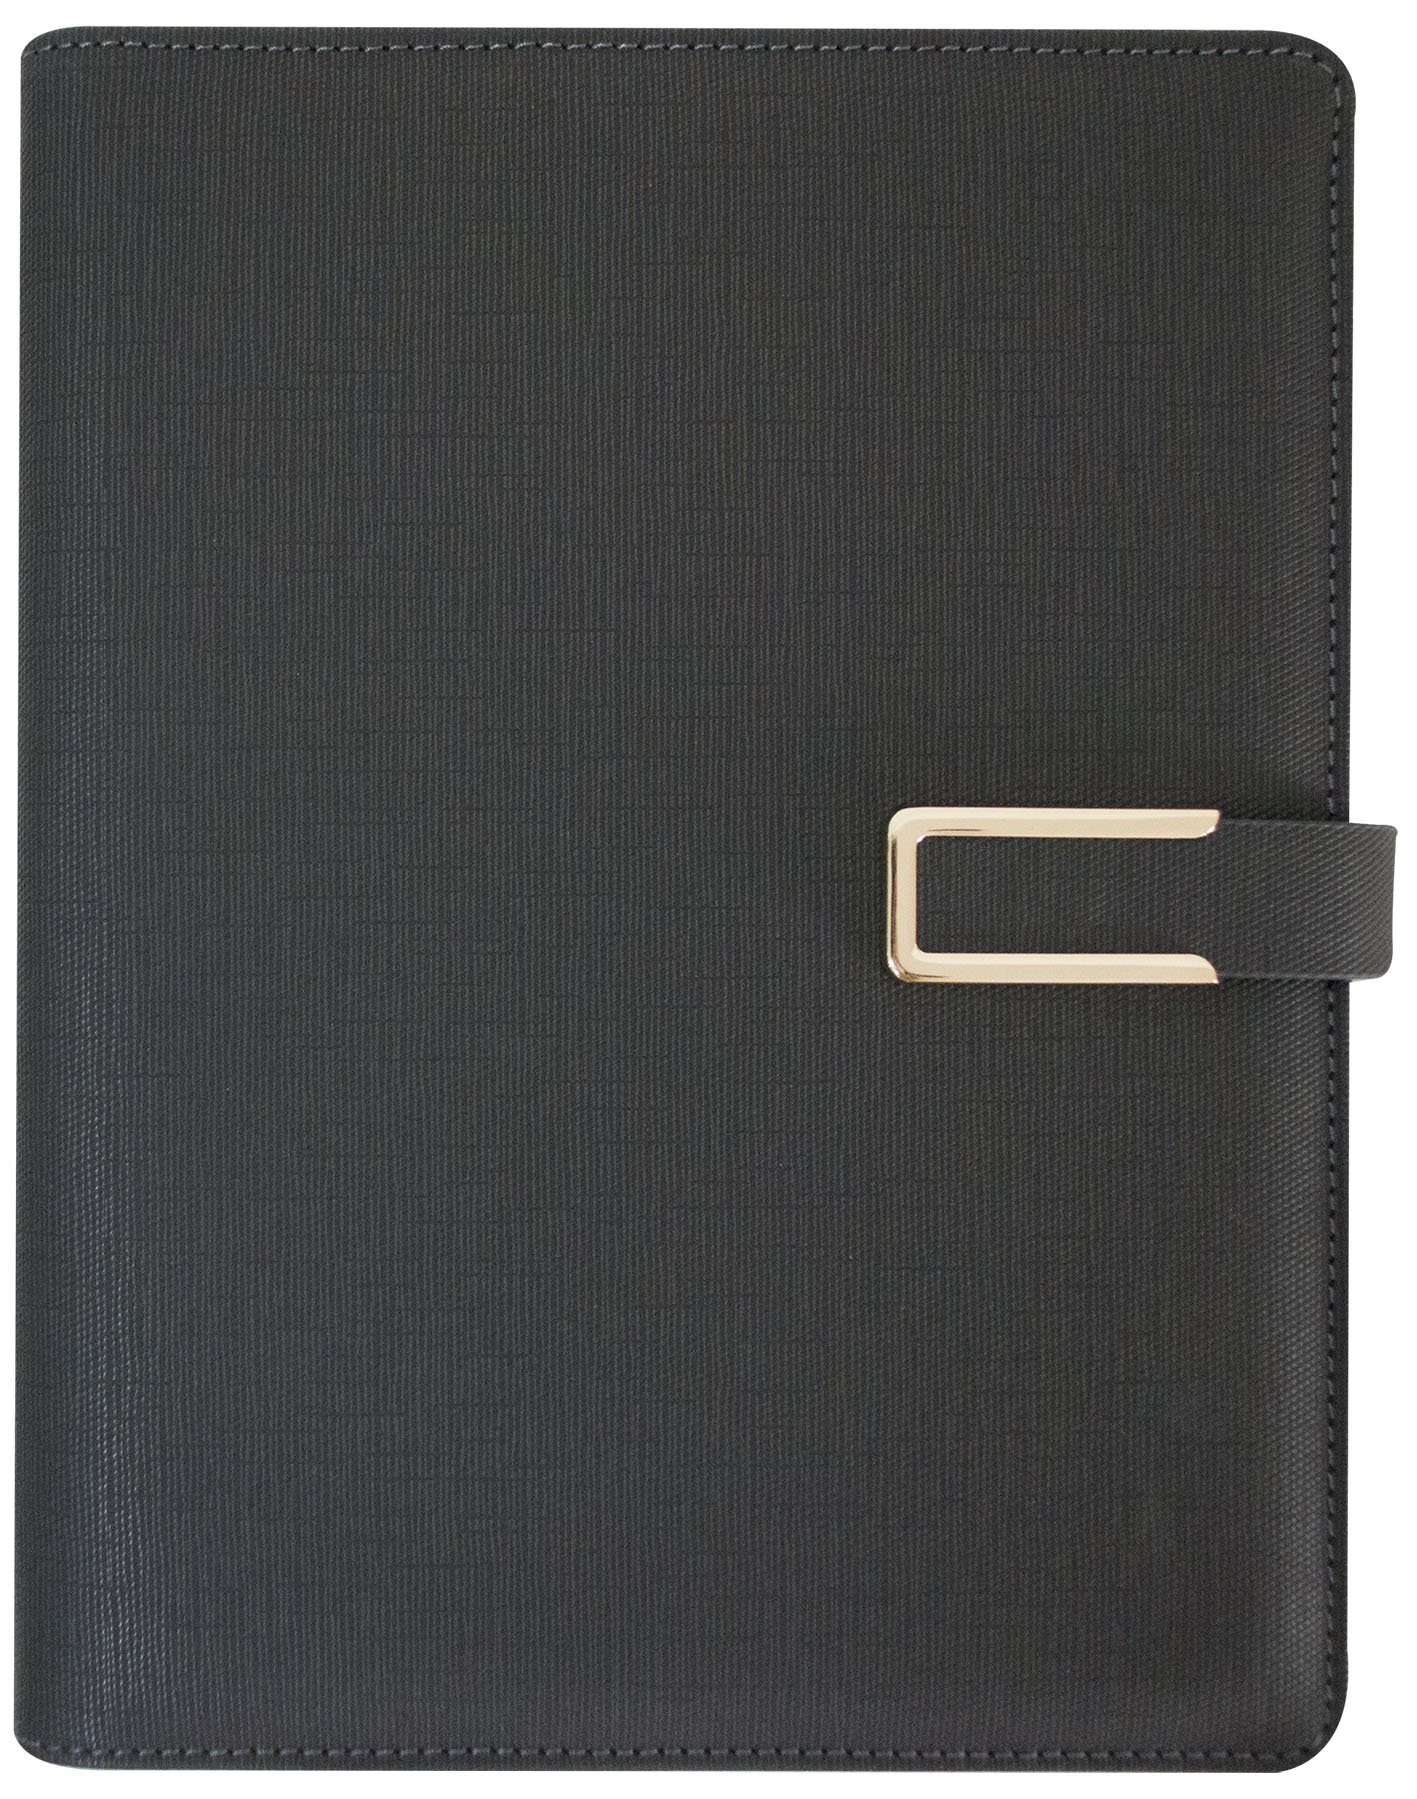 Ultimate Journal Thermo PU Cosmic Black